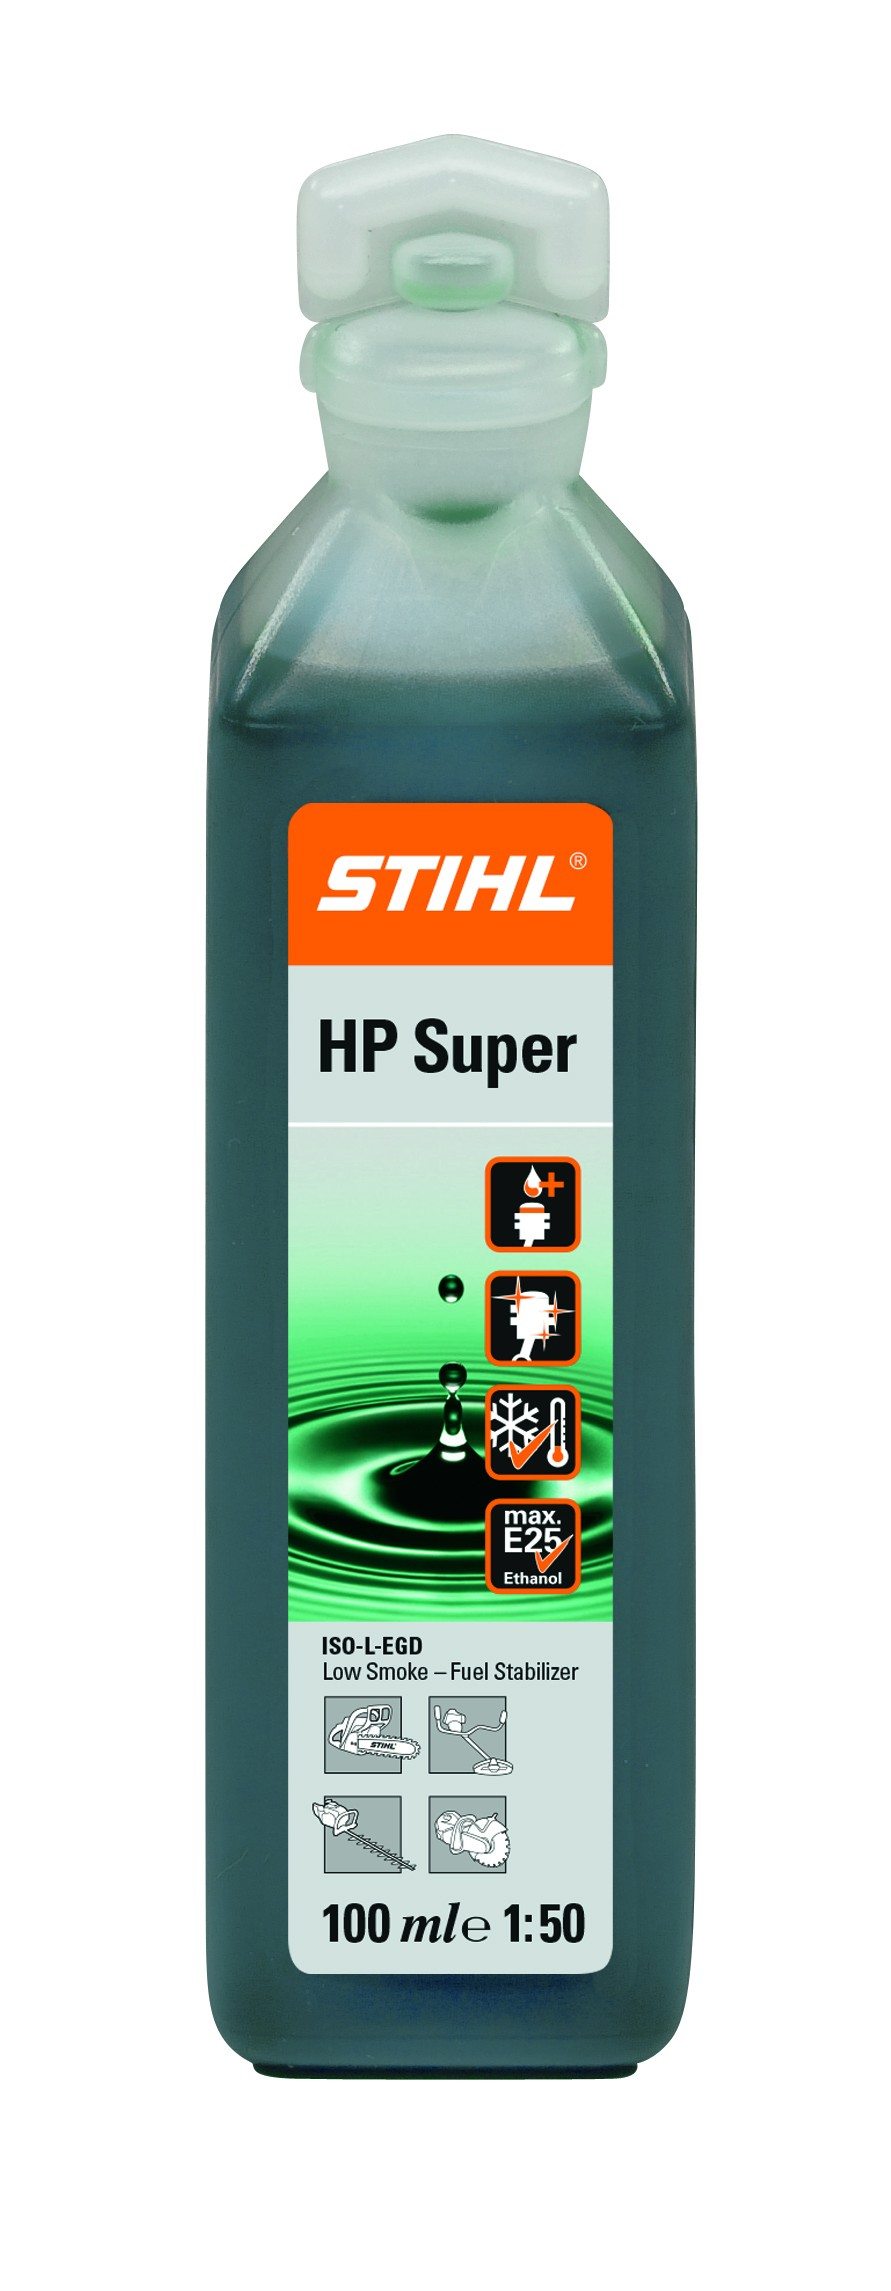 HP super Two stroke engine oil one-shot